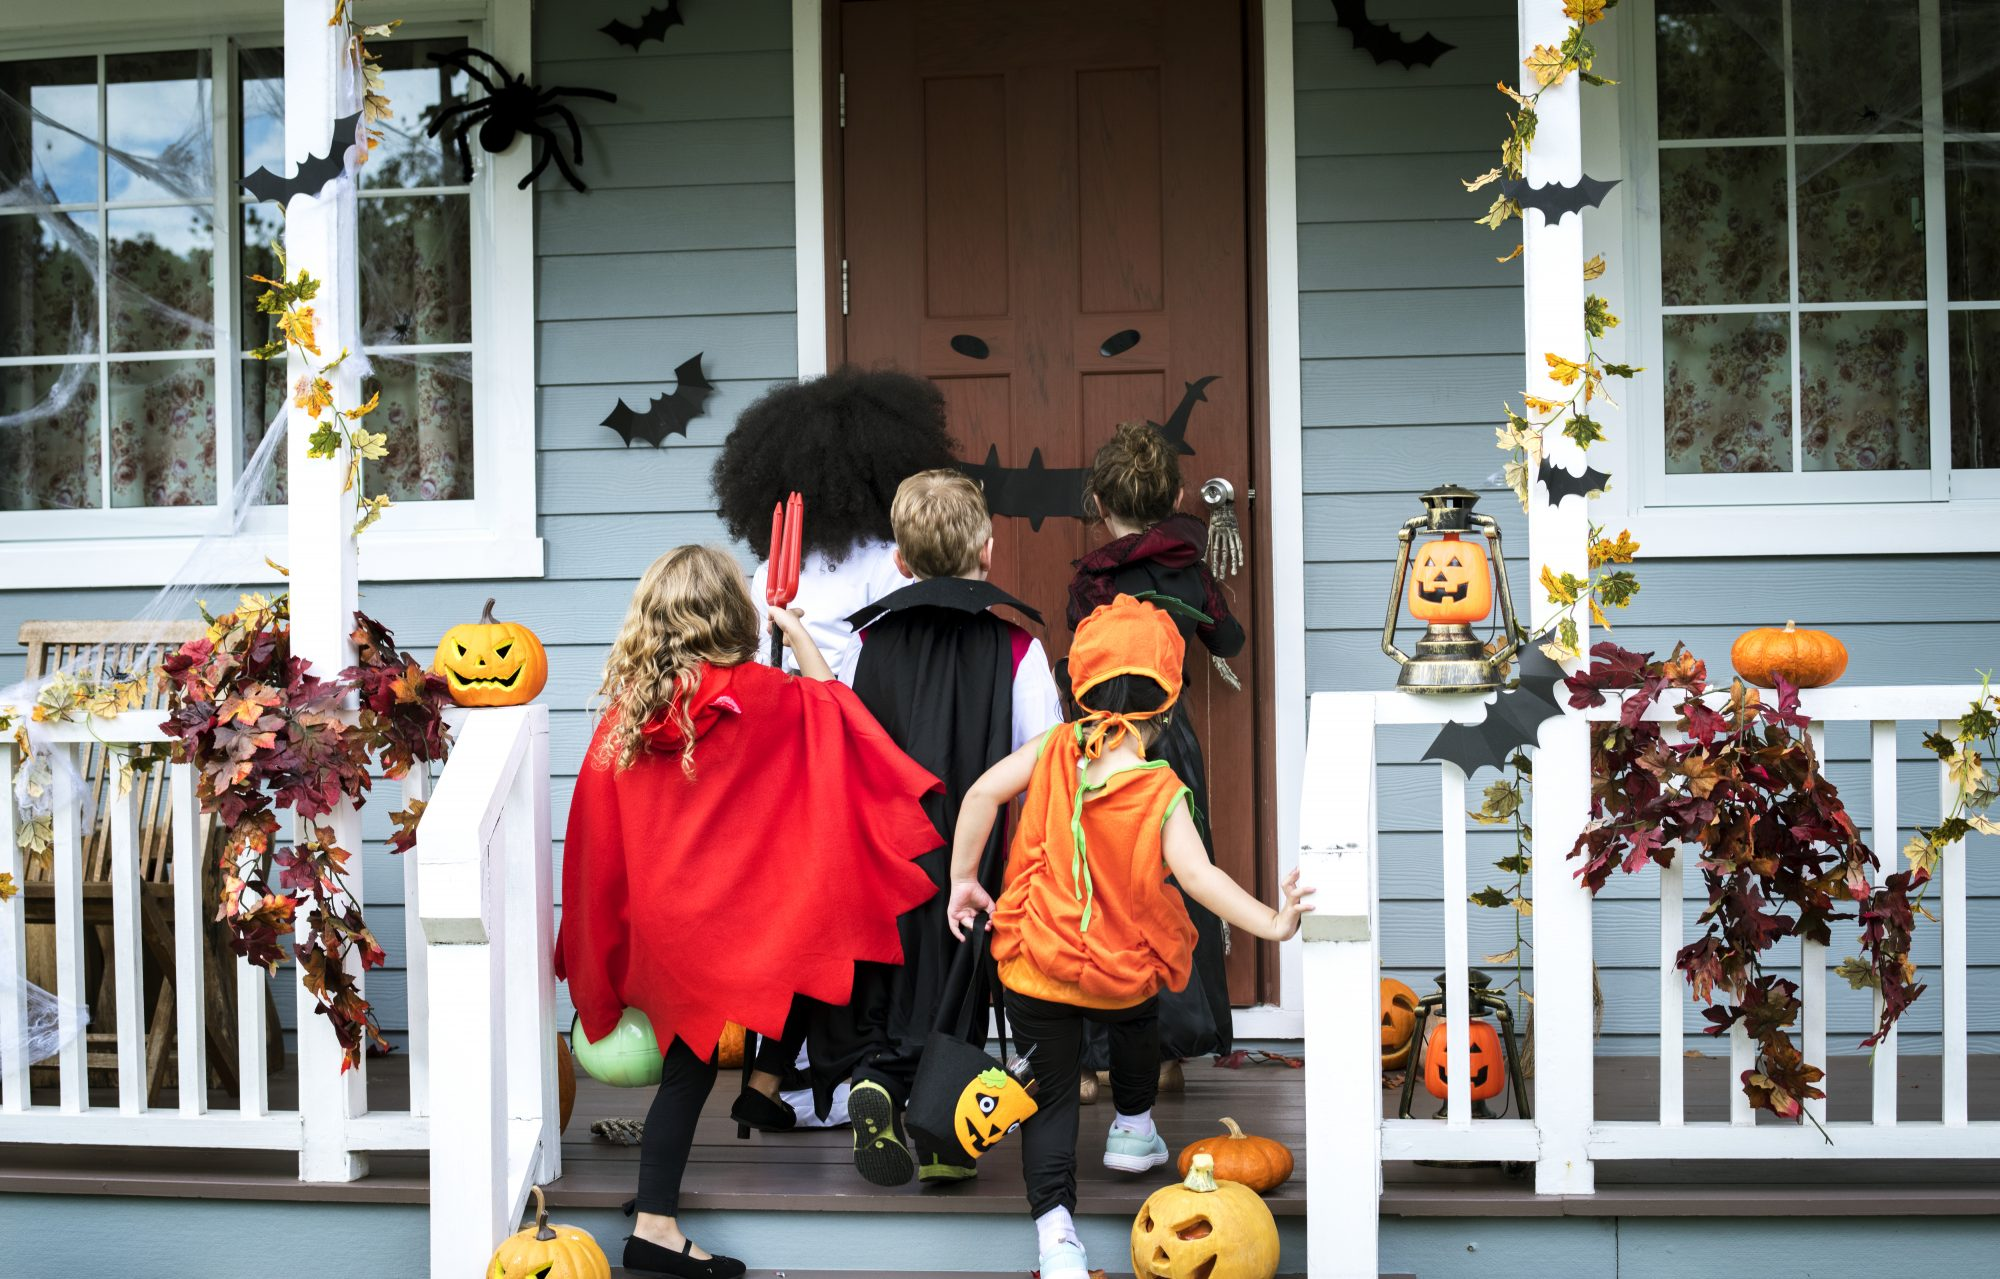 Young kids trick or treating during Halloweenkids-treak-or-treating-getty-0921